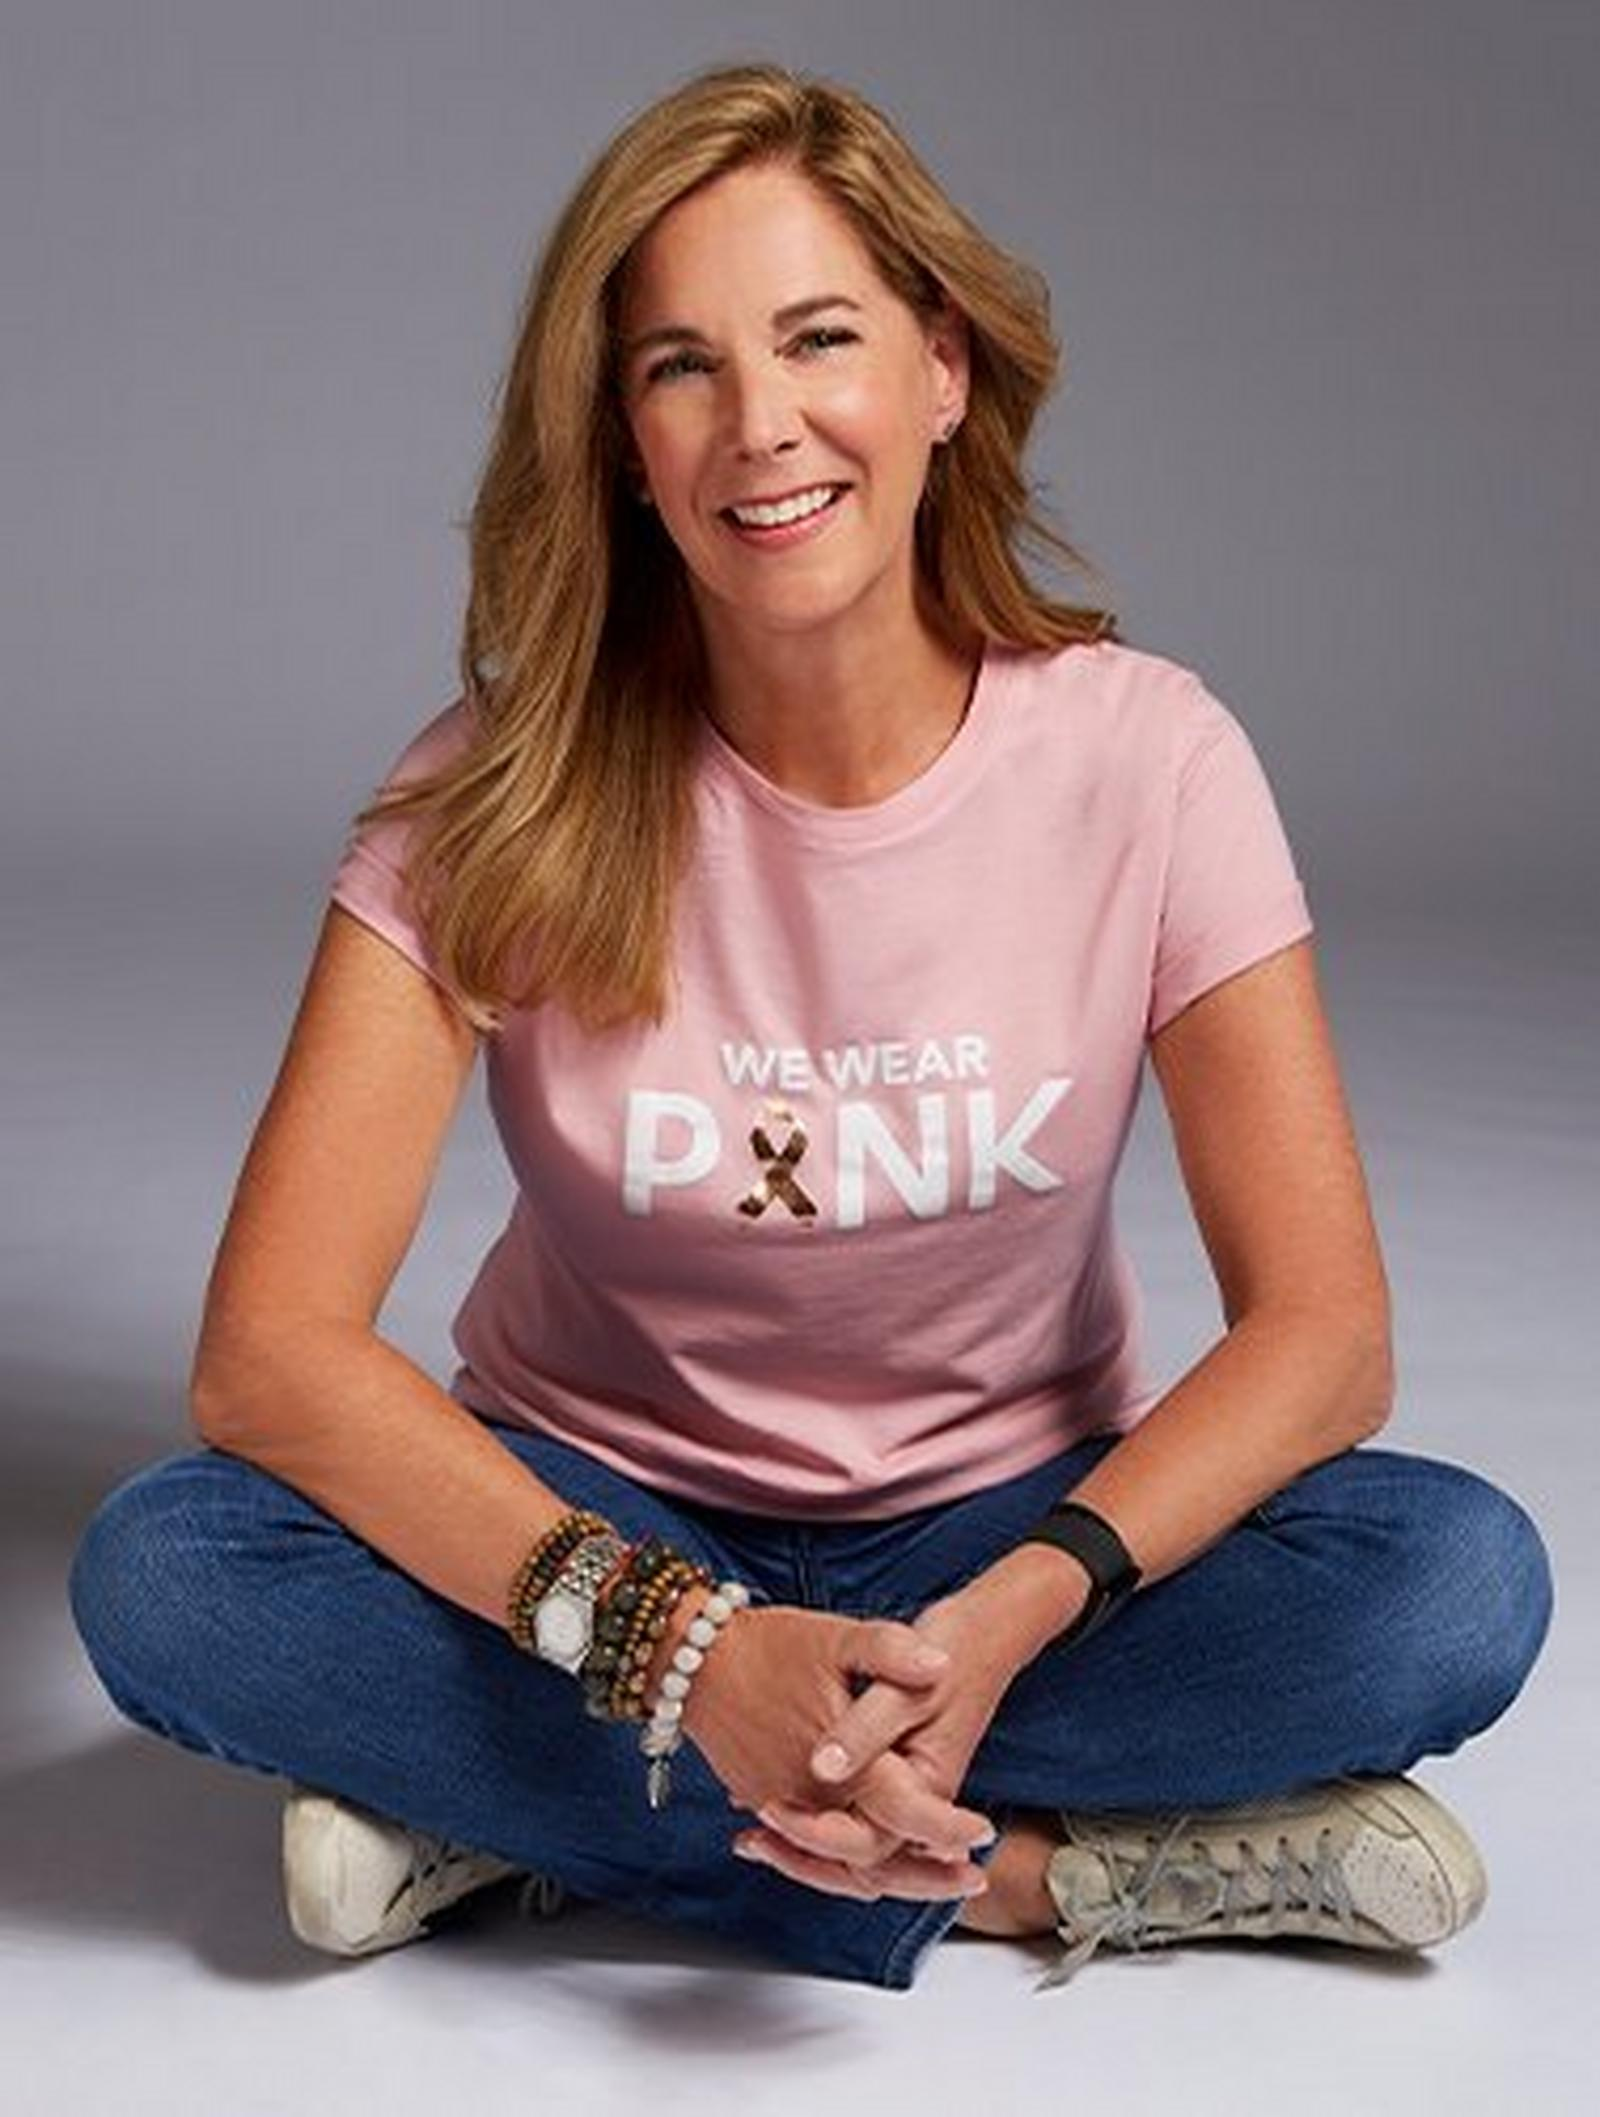 model wearing a pink breast cancer awareness themed shirt that says